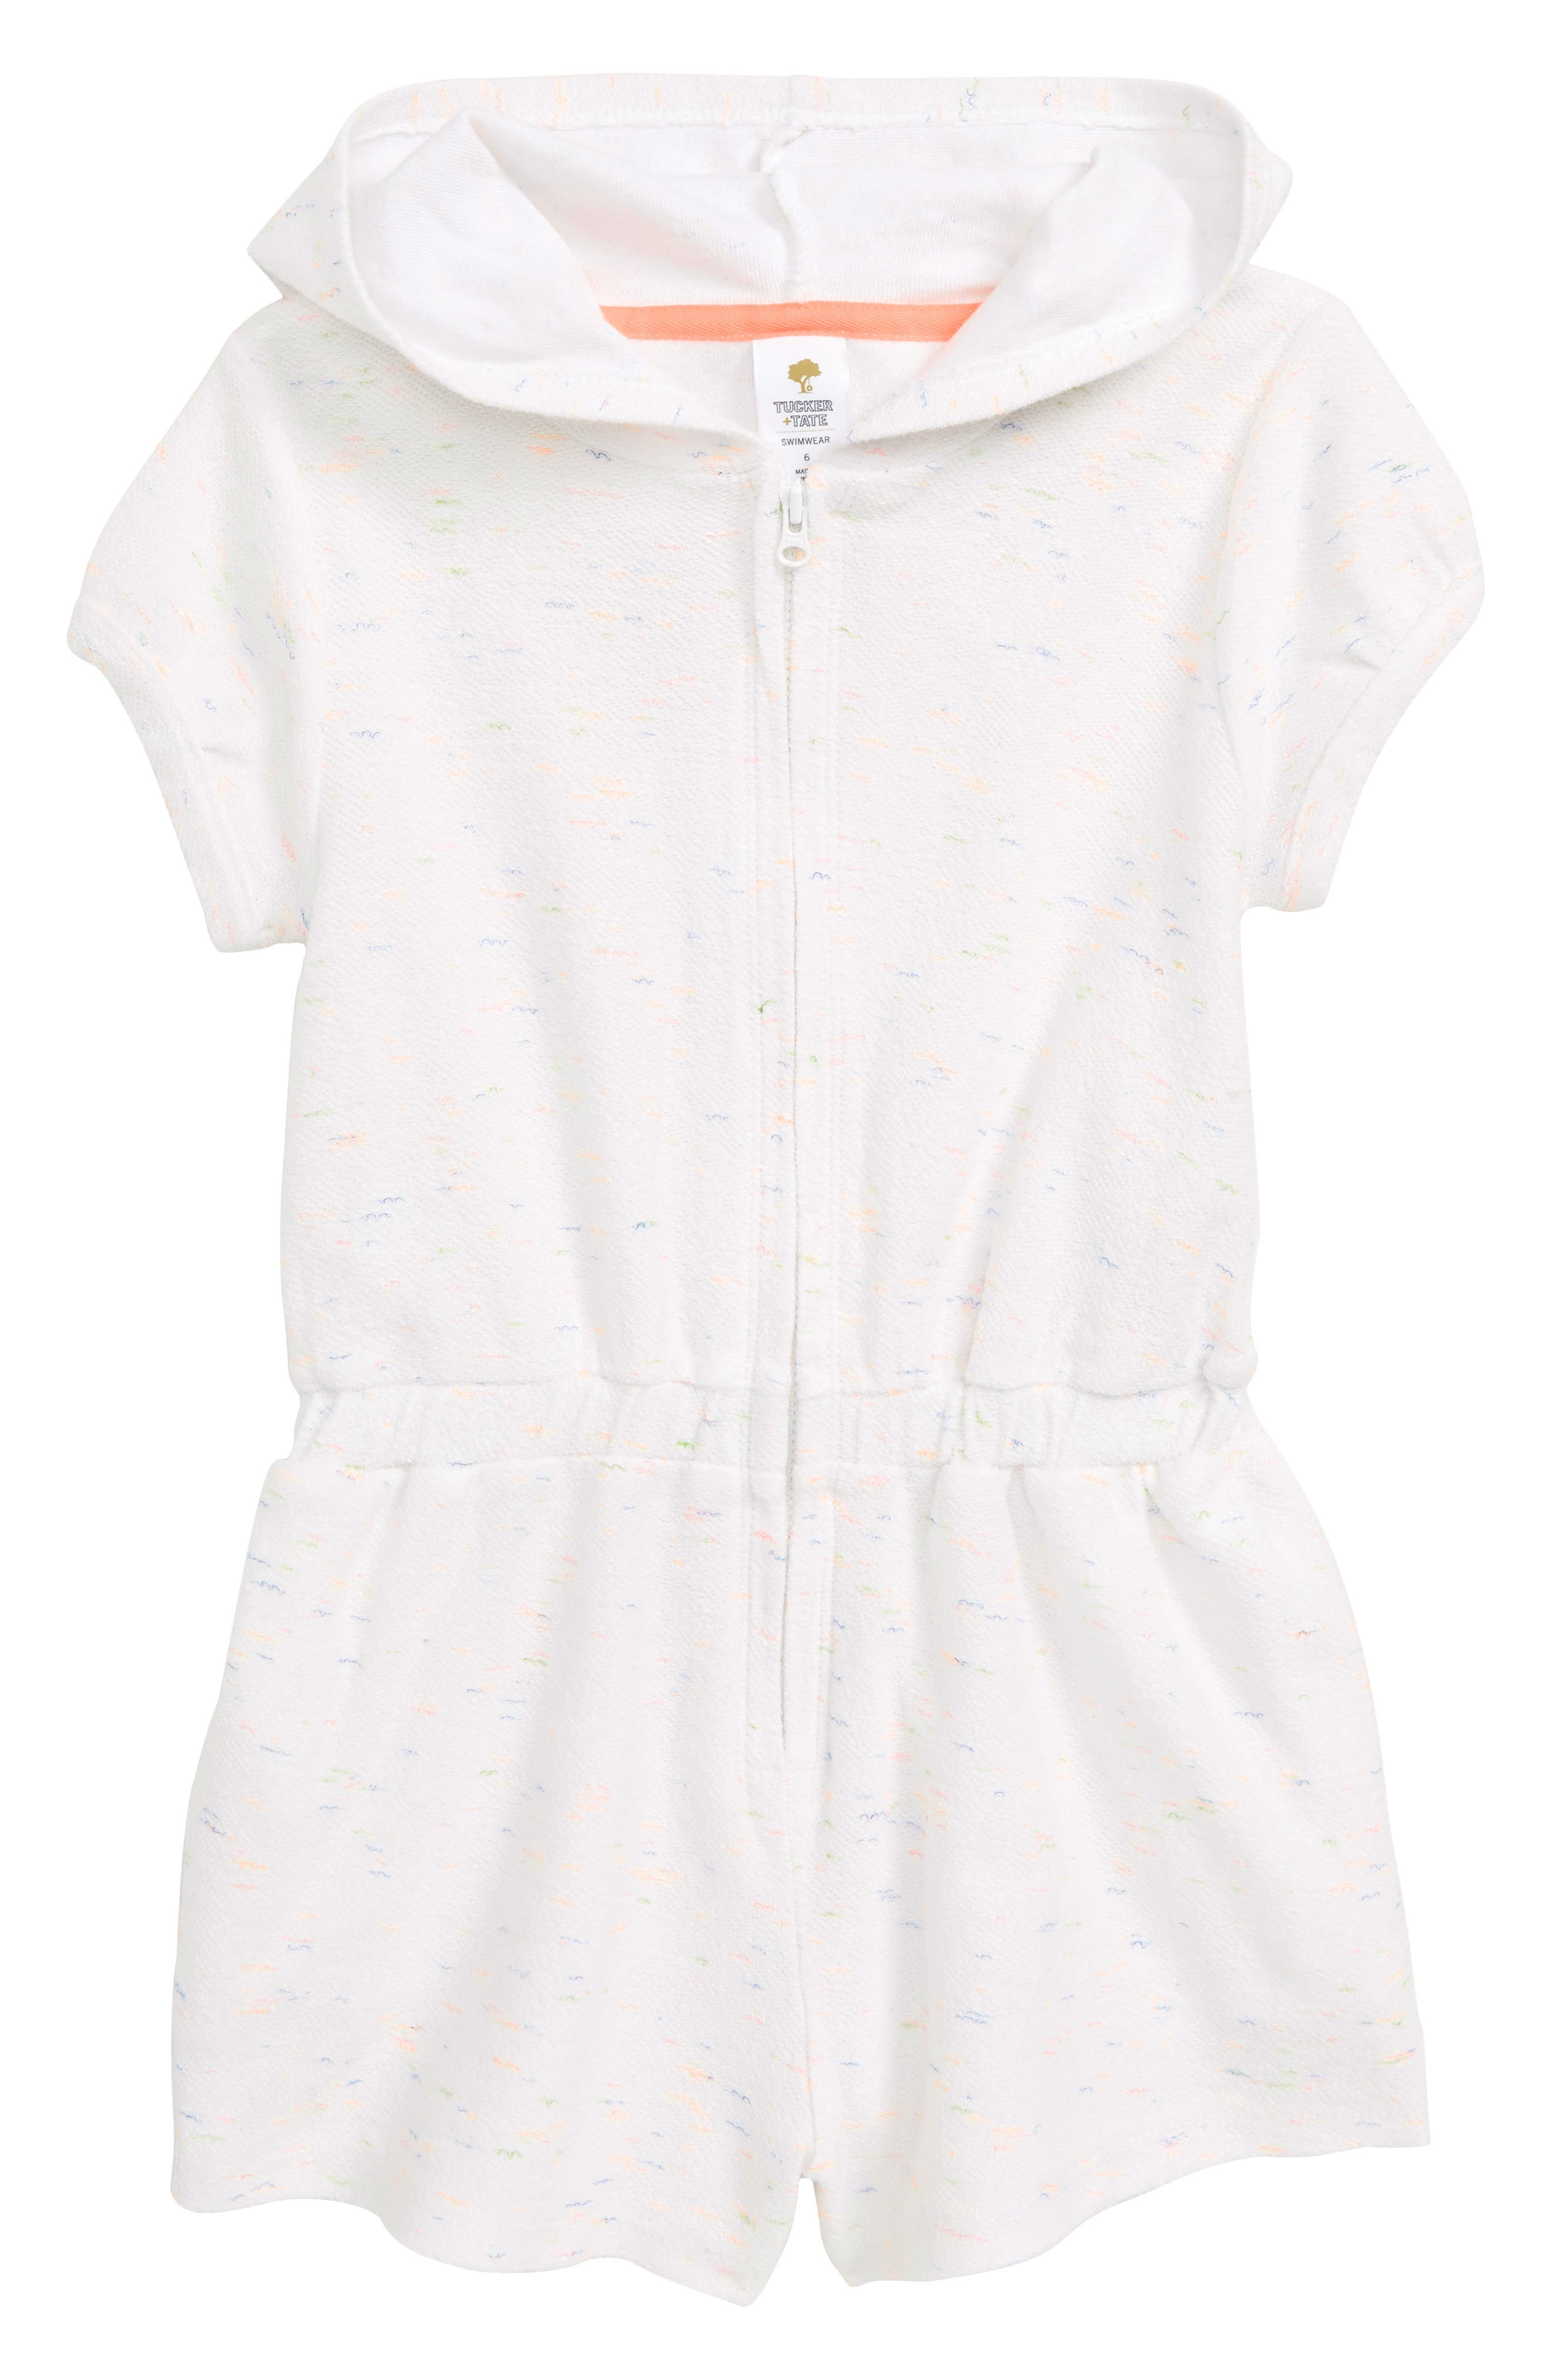 TUCKER + TATE Terry Cover-Up Romper, Main, color, WHITE